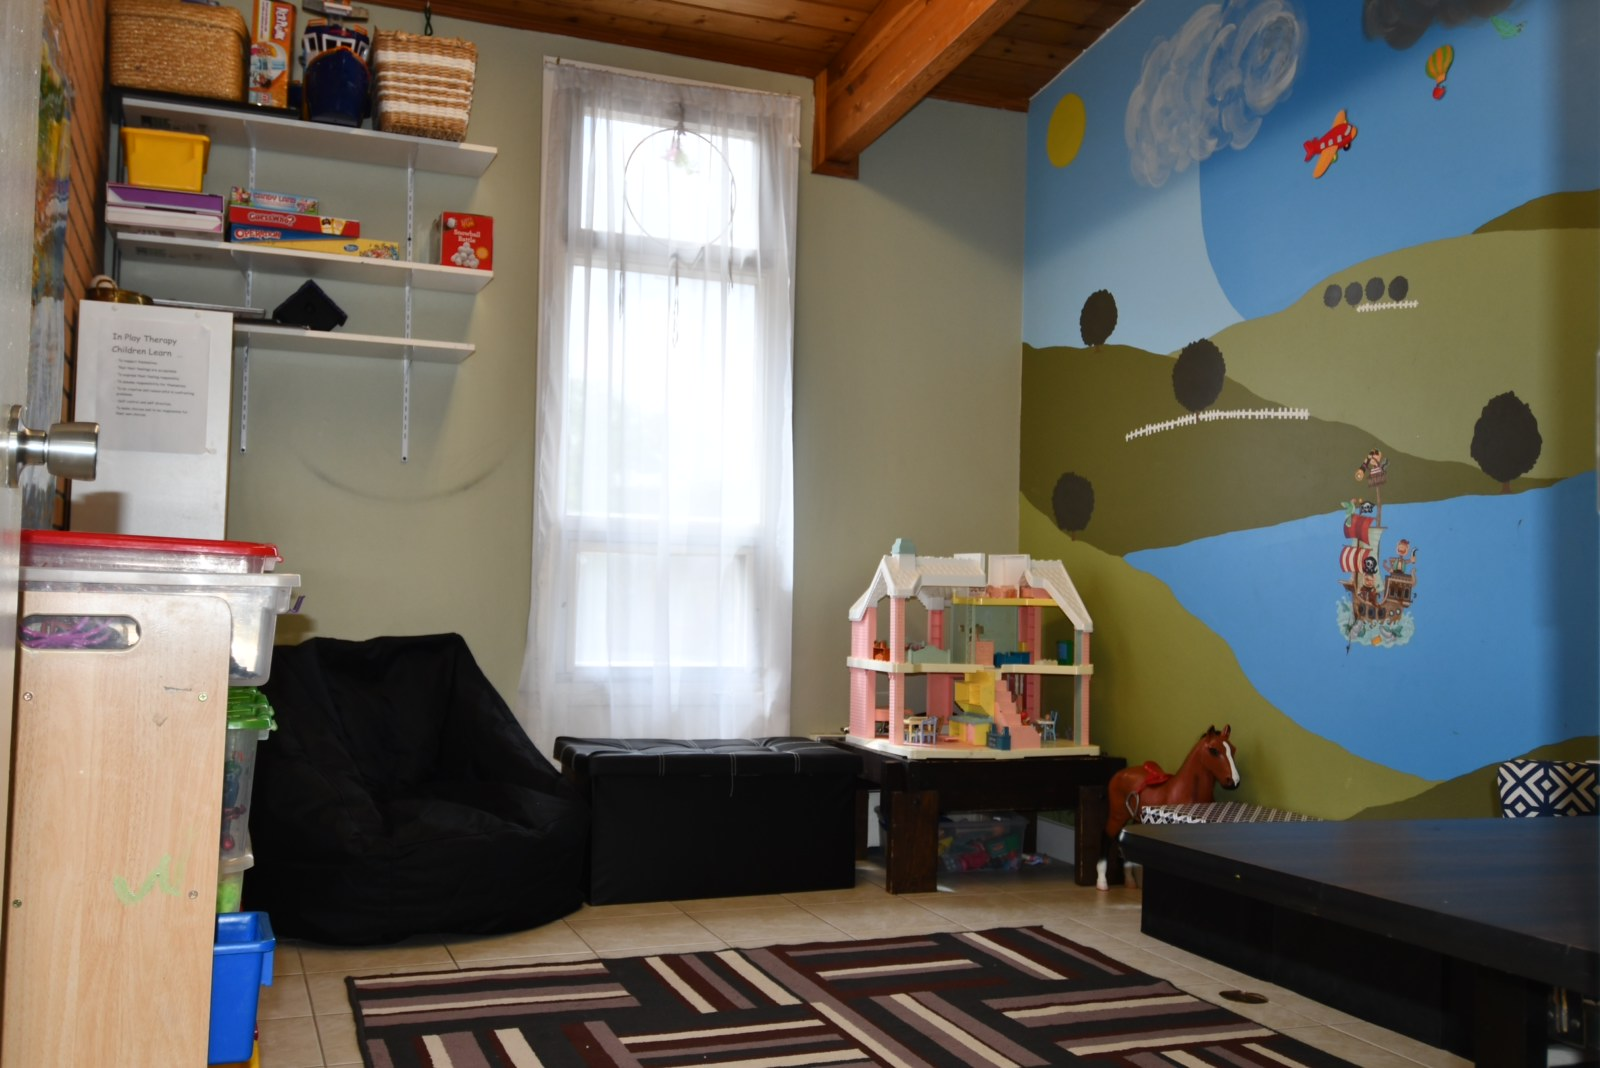 Therapeutic play area